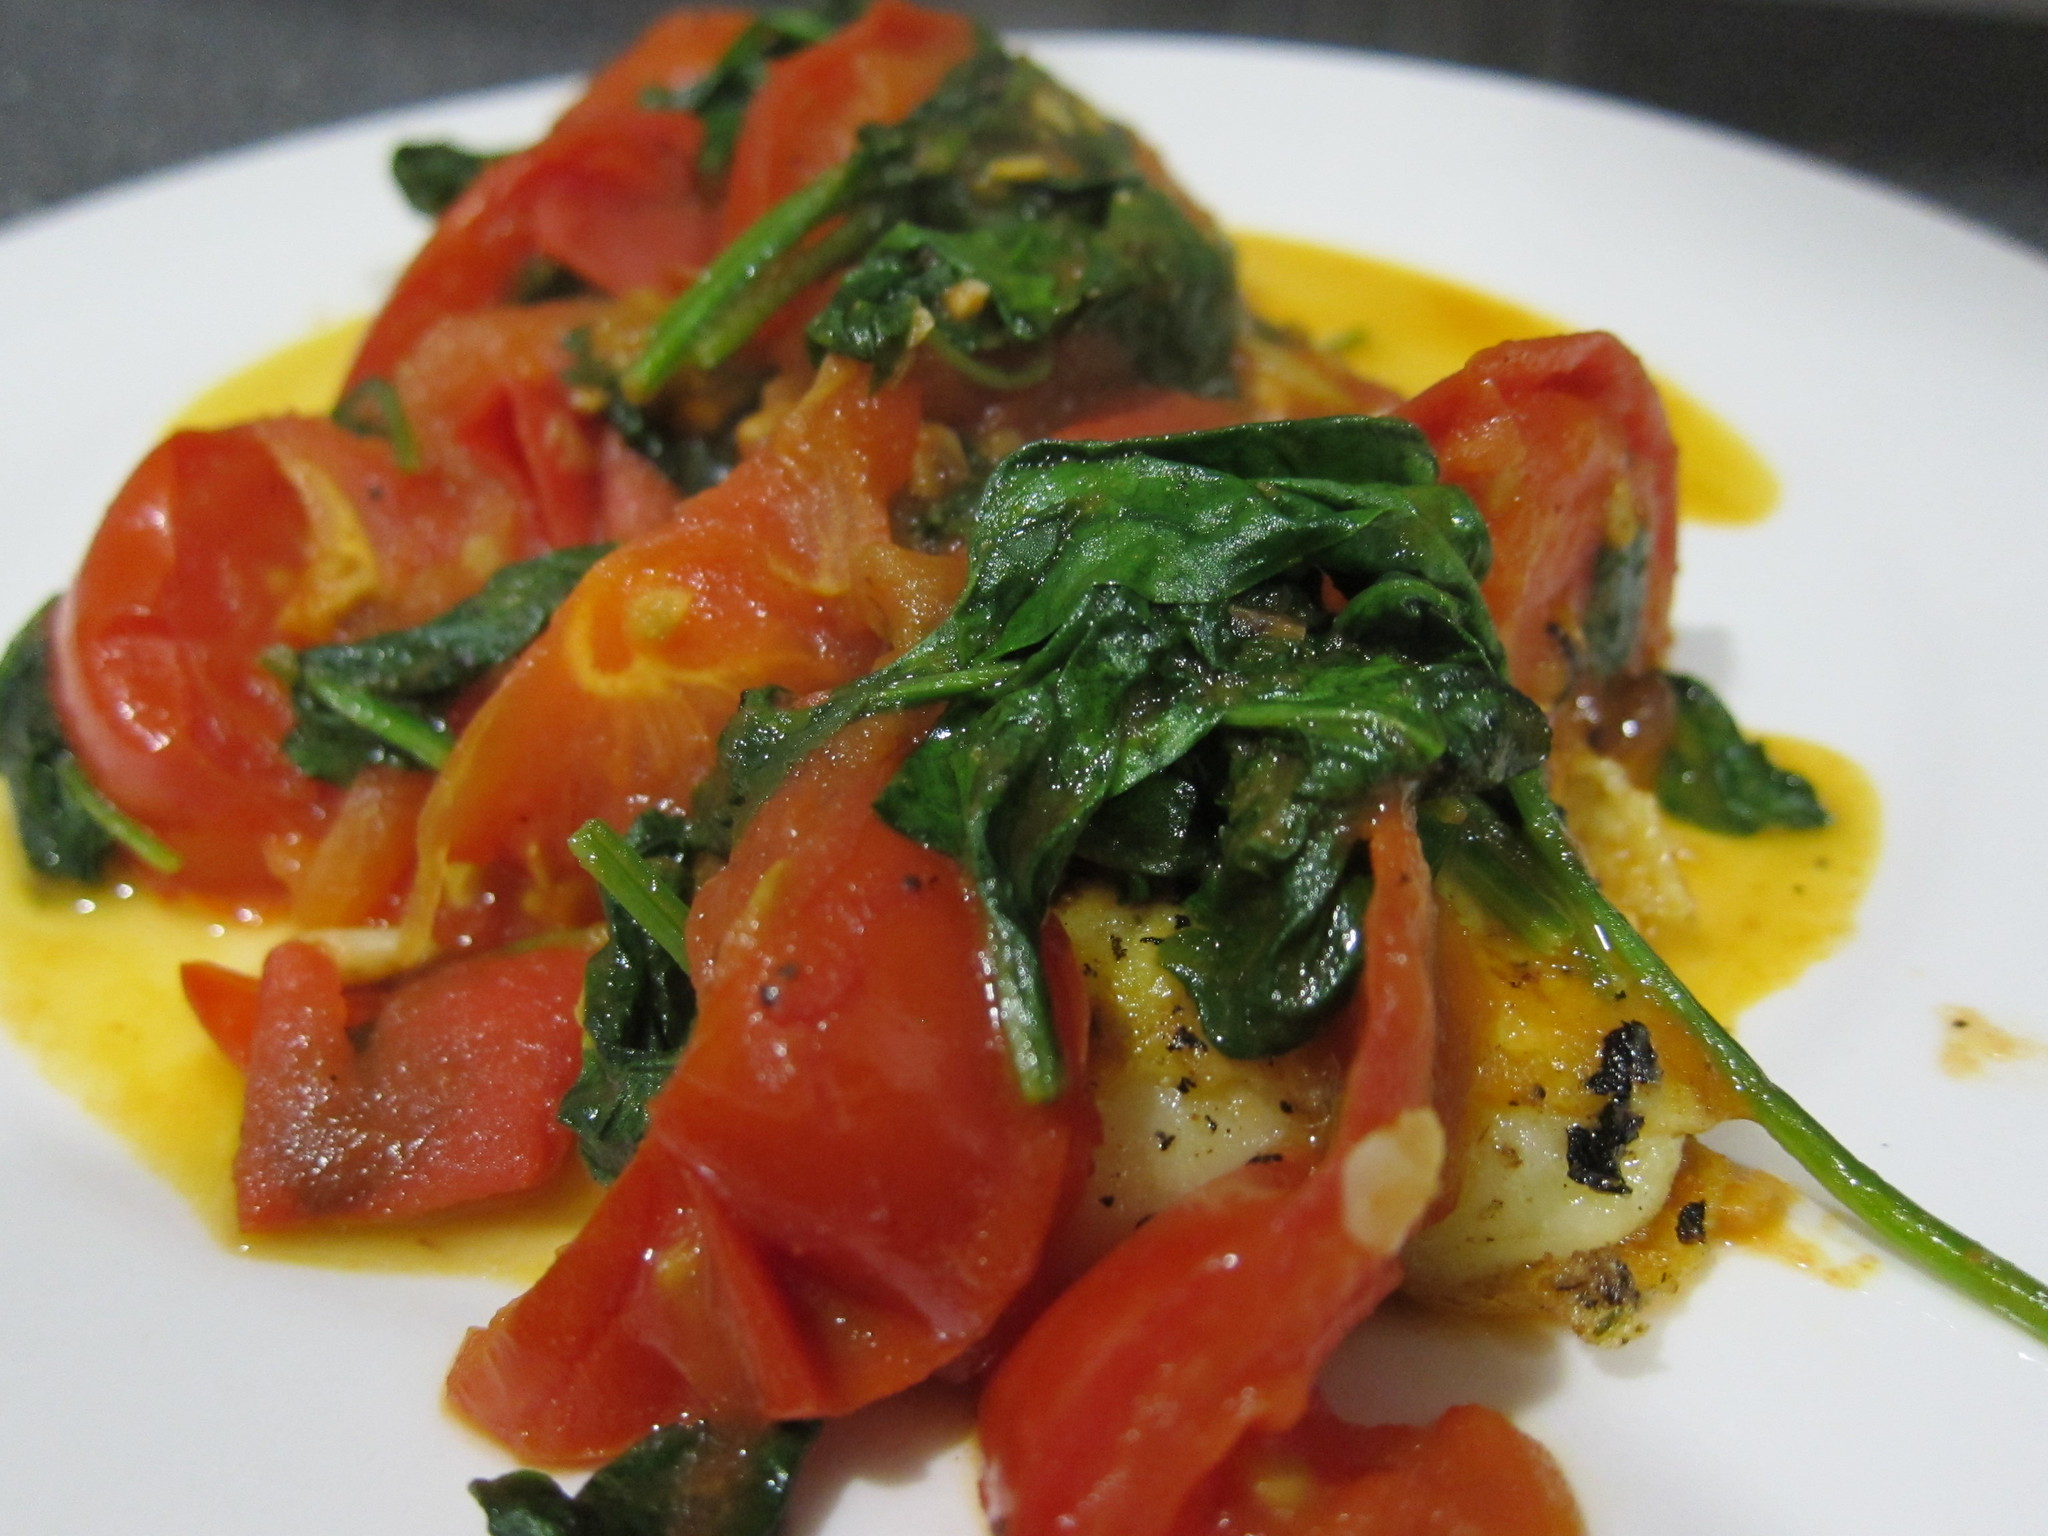 Tomatoes and spinach on polenta